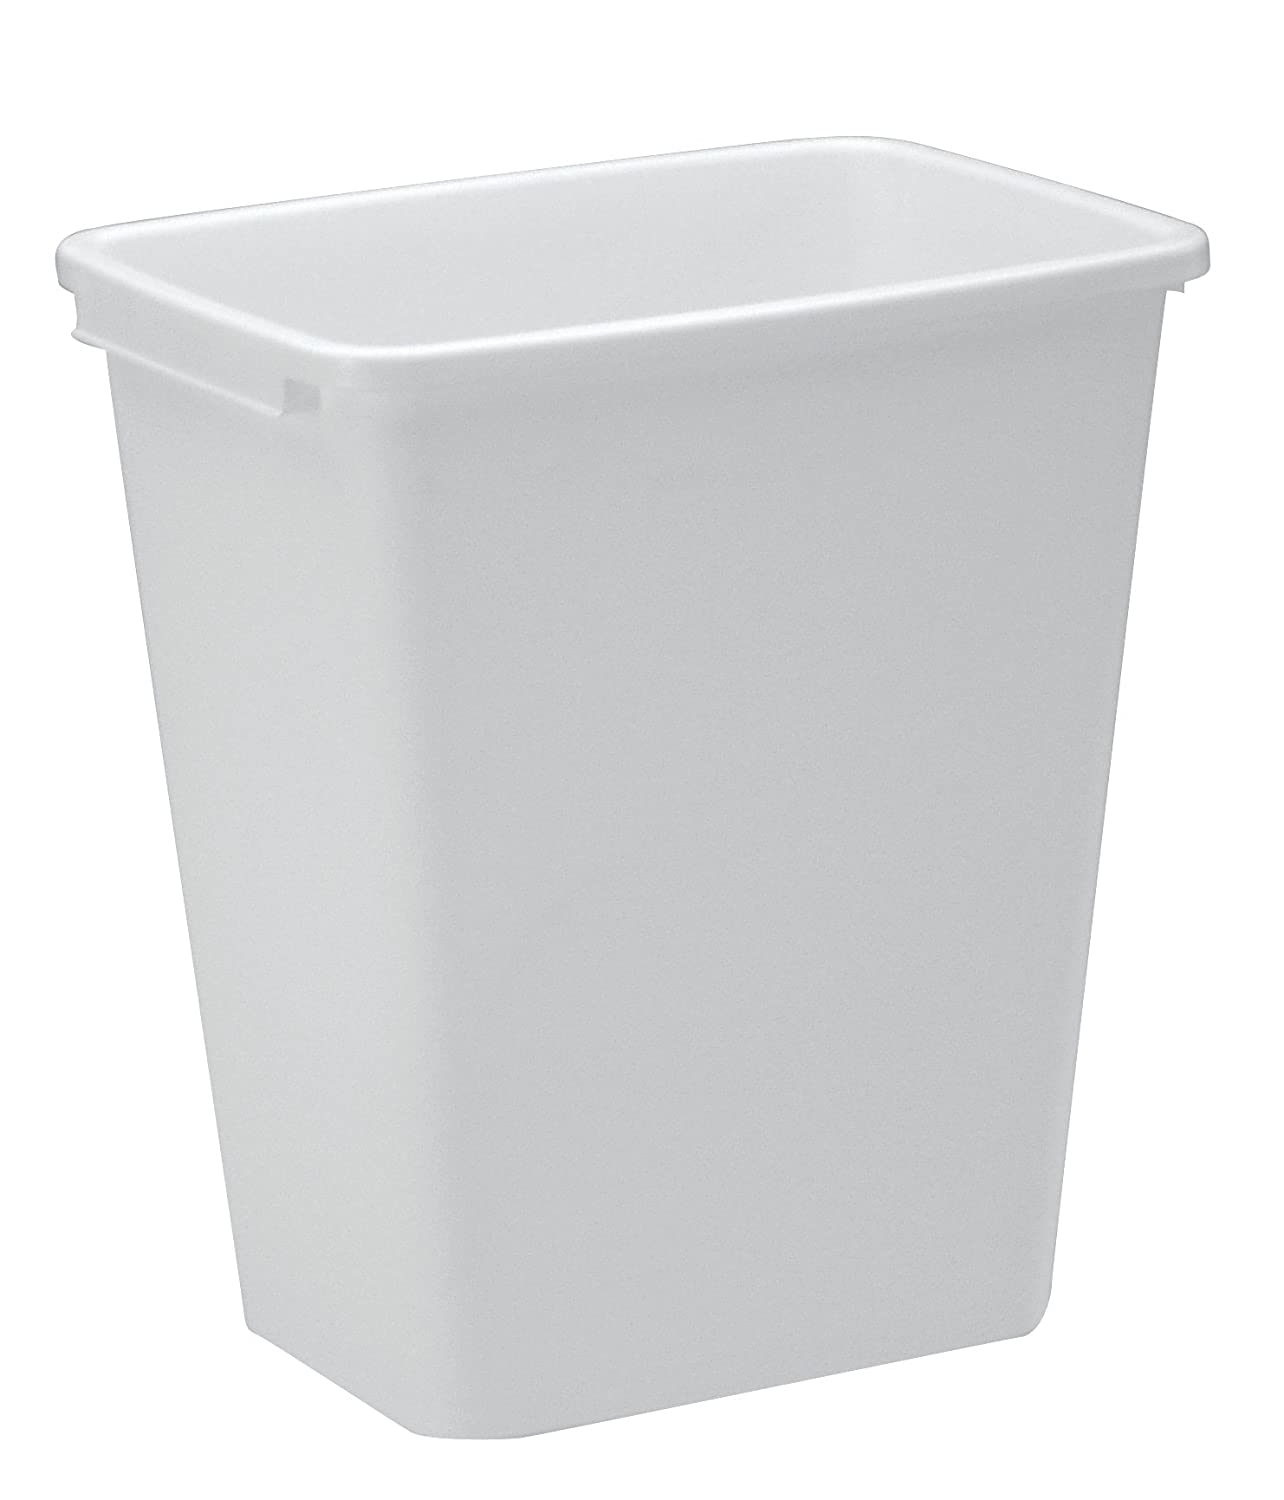 United Solutions WB0173 10-Quart Wastebasket Kitchen, Laundry or Office Trash Can, 2.5 Gallon, Black by United Solutions B00OP46C4K 2.5 Gallon|ブラック ブラック 2.5 Gallon